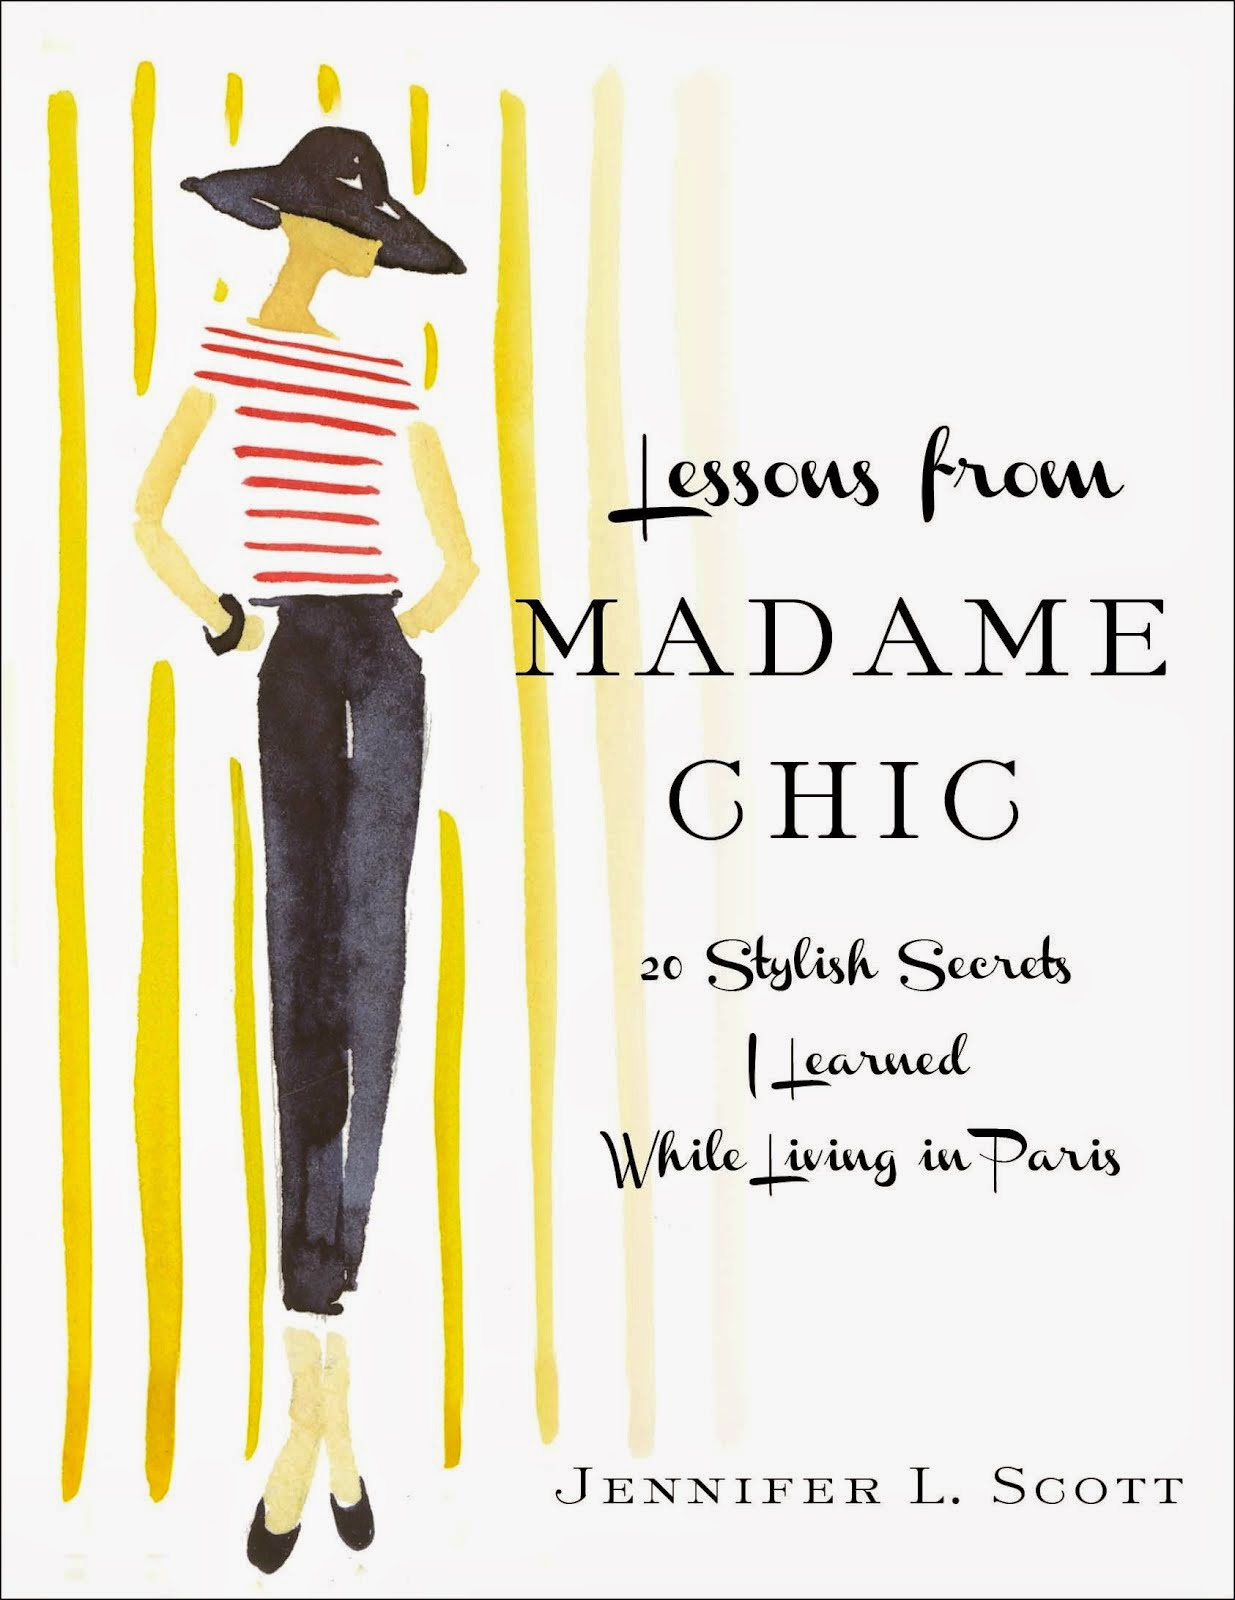 Lessons from Madame Chic: 20 Stylish Secrets I learned While Living in Paris, Book by Jennifer L. Scott